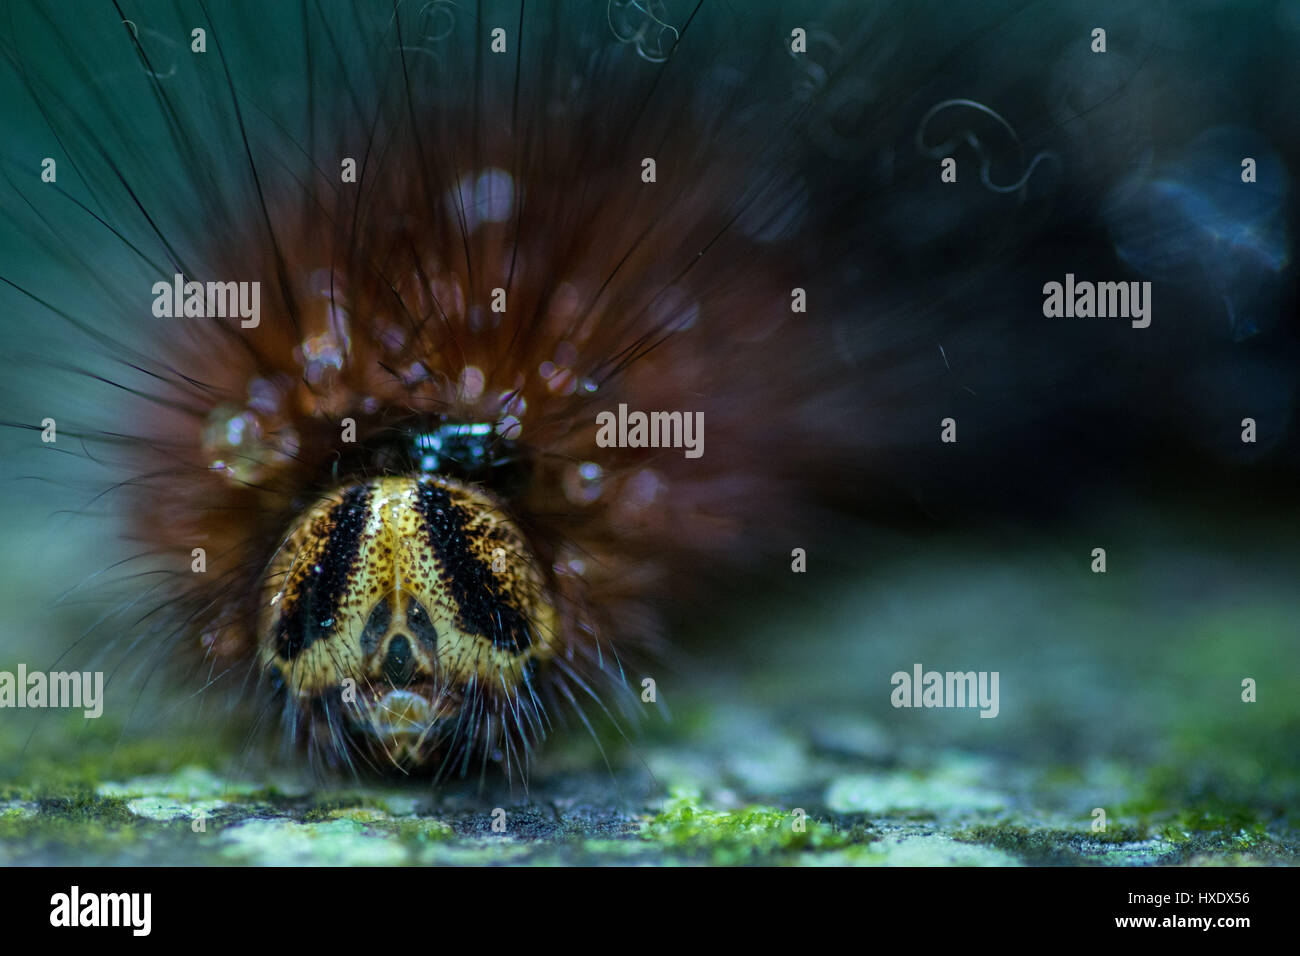 Close up macro of the face of a Hairy Gypsy Moth Caterpillar.Stock Photo